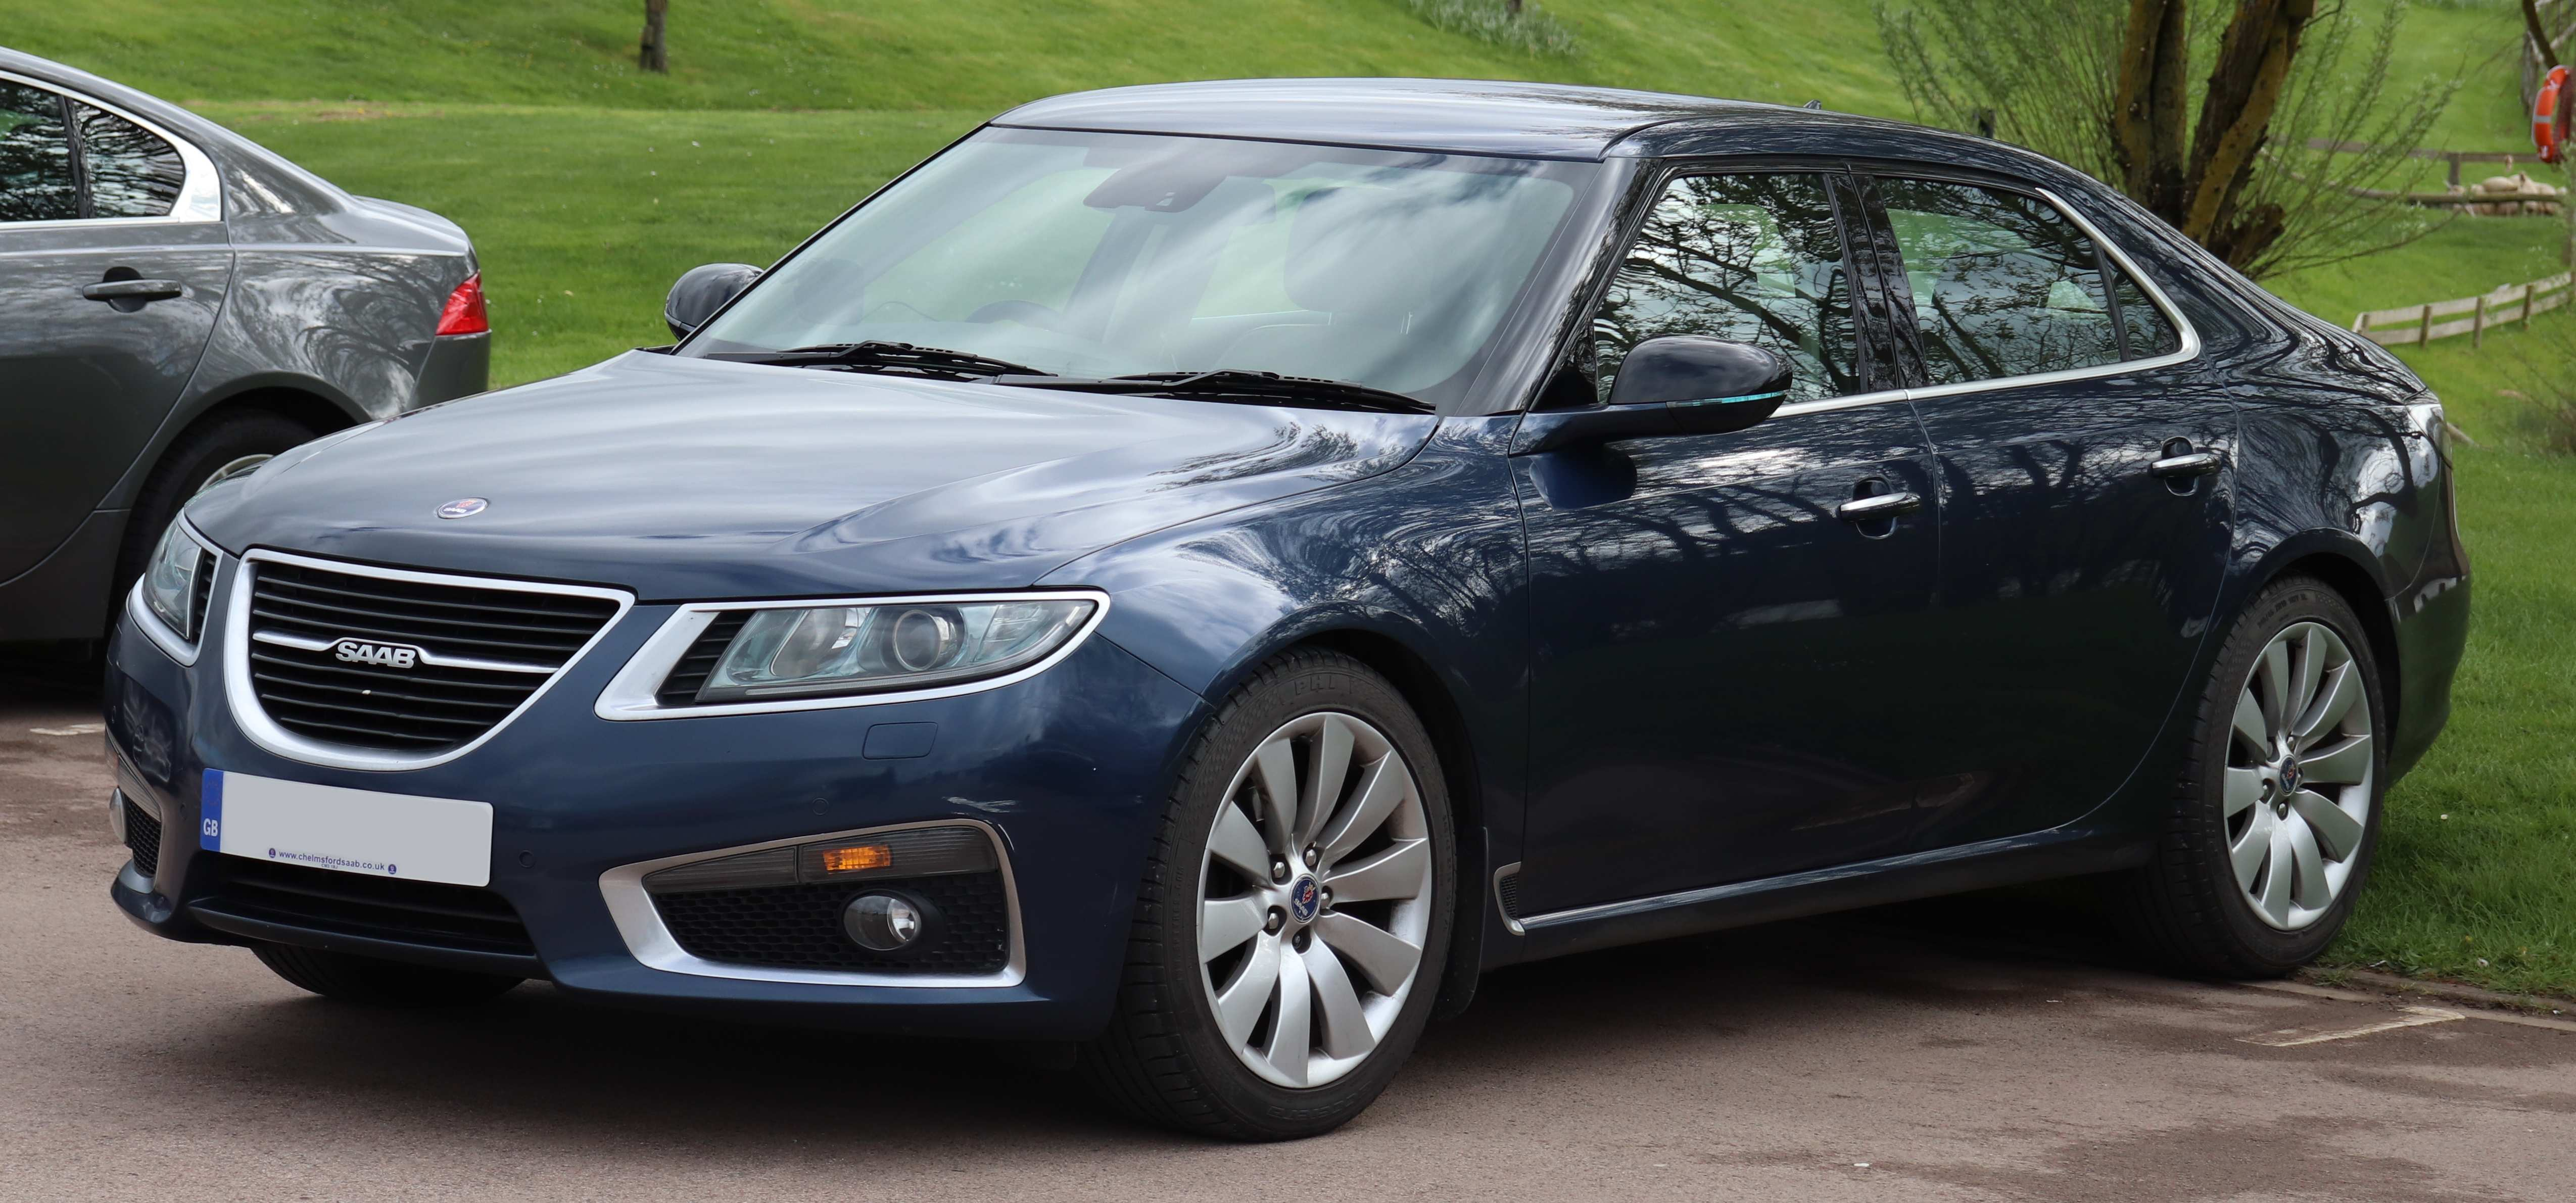 44 The Best 2019 Saab 9 5 Rumors